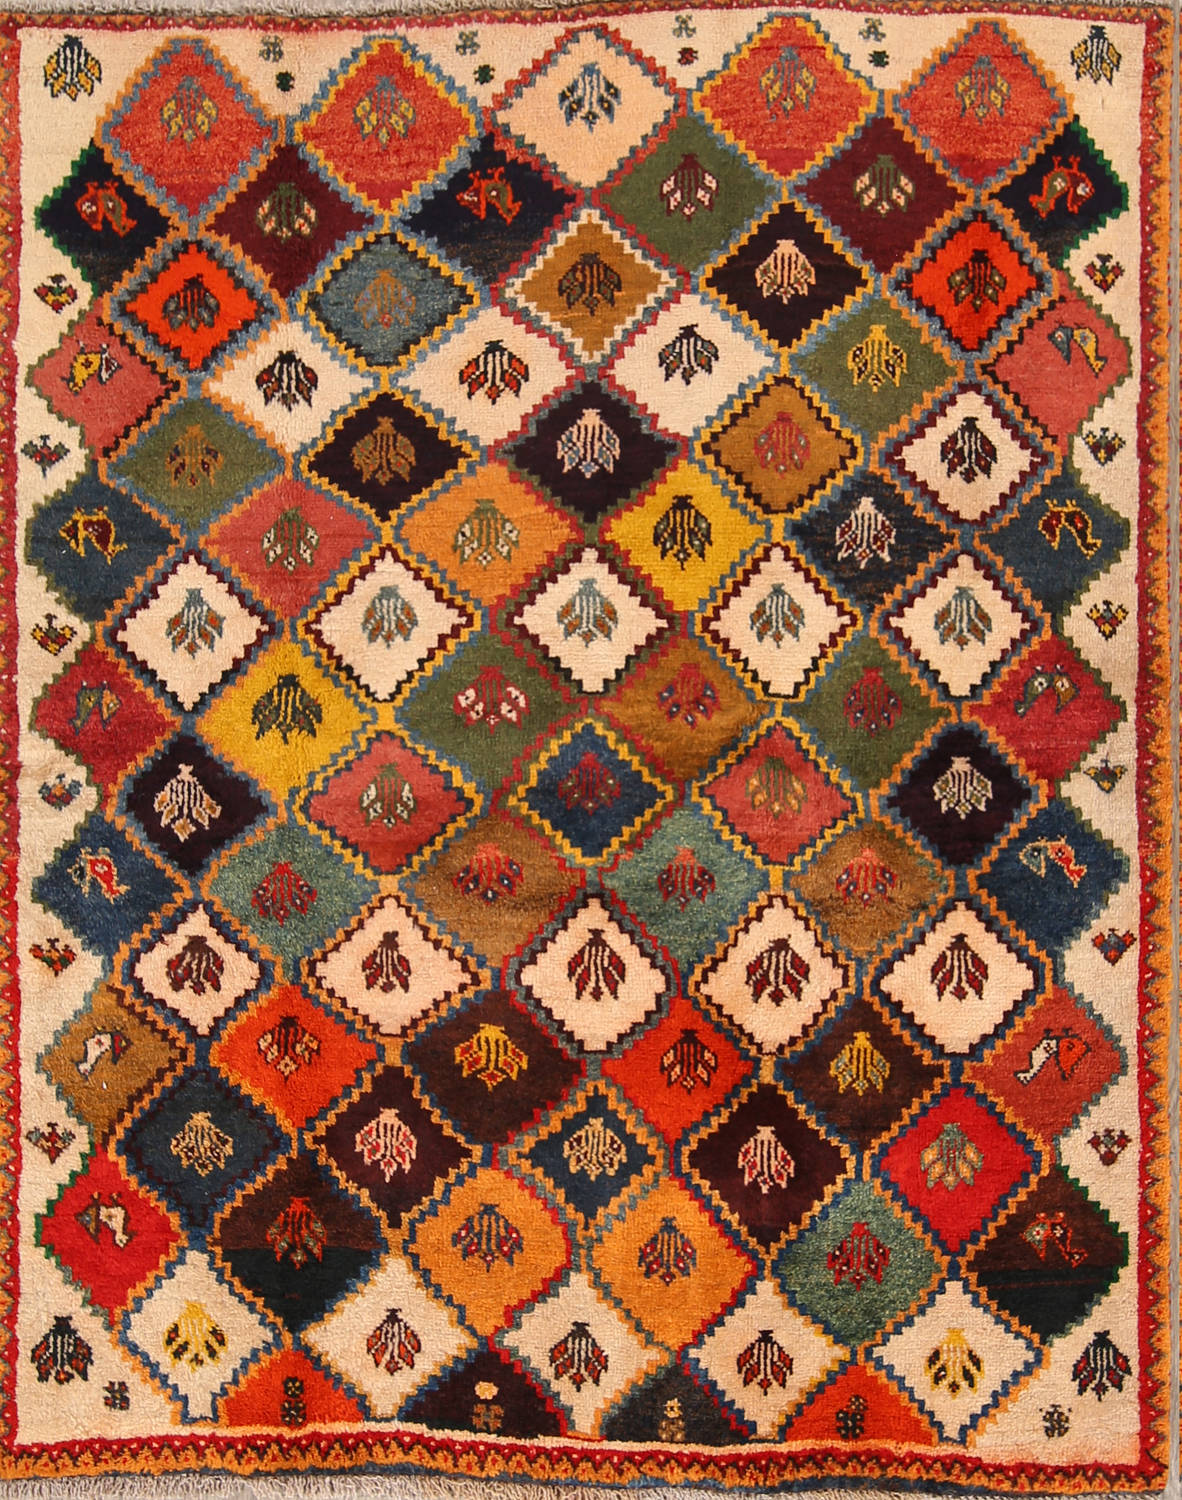 Tribal Geometric Gabbeh Shiraz Persian Hand-Knotted Area Rug Wool 5x6 image 1